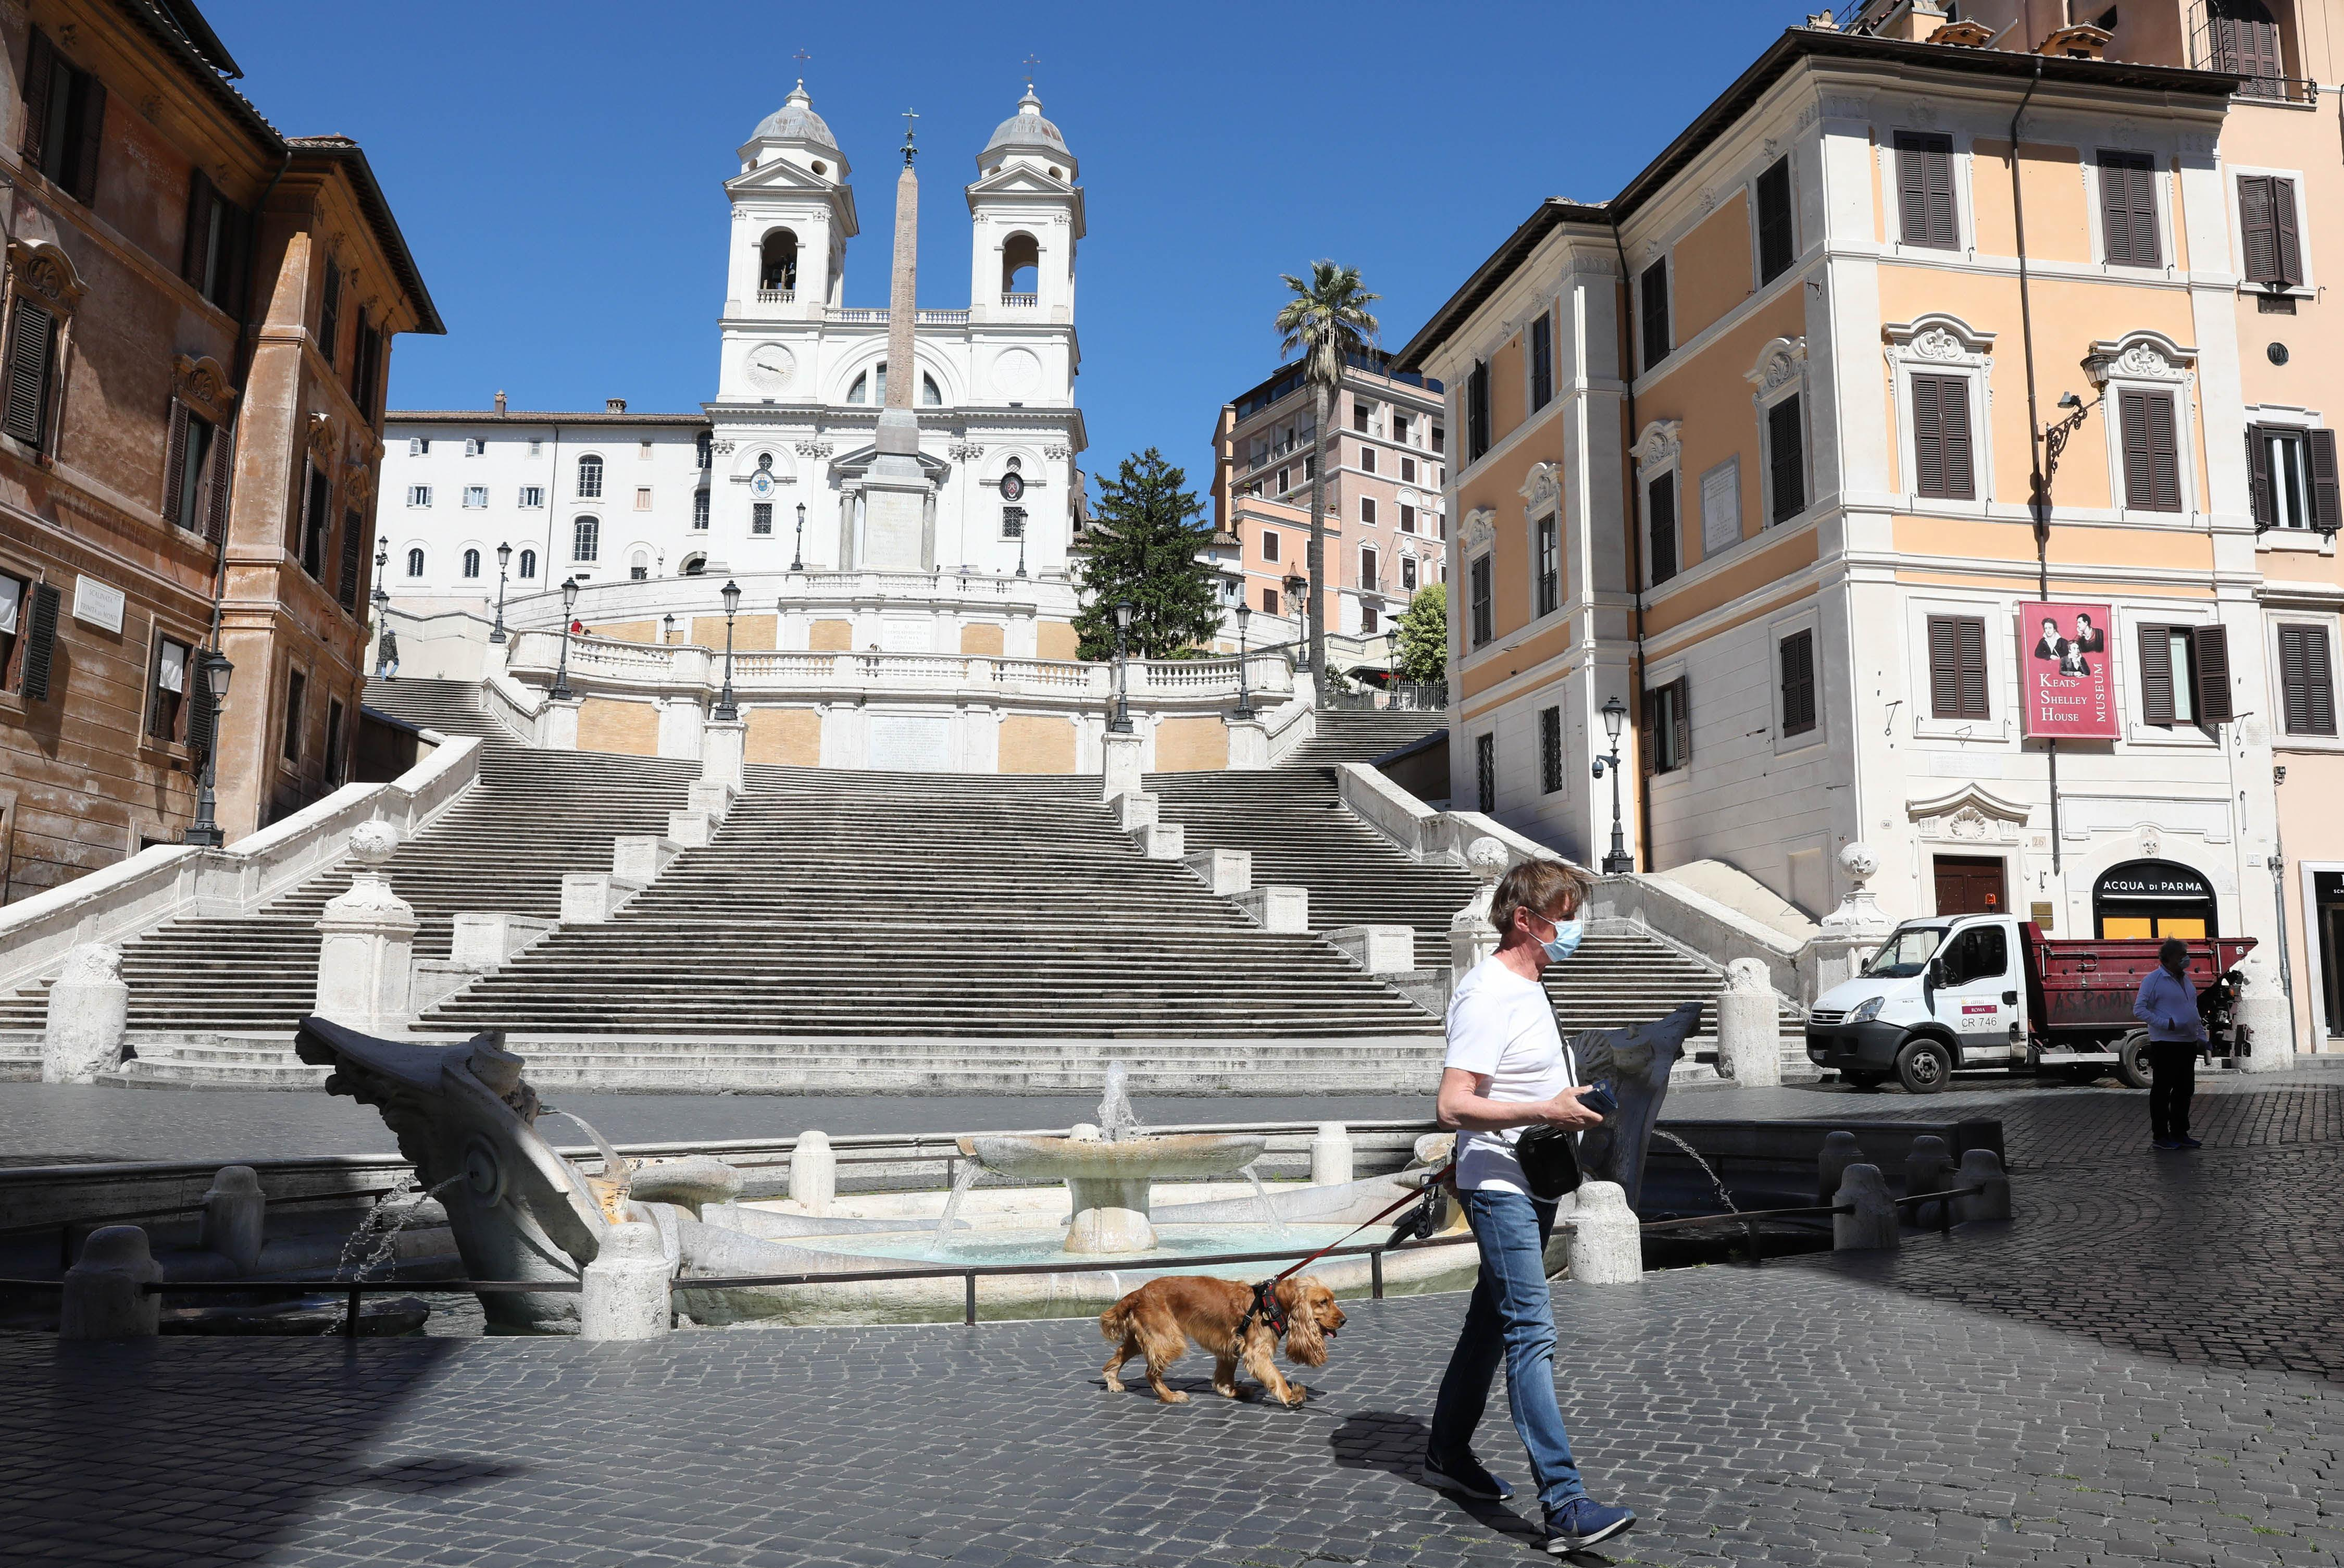 ROME, May 4, 2020 .A man walks his dog at the Piazza di Spagna in Rome, Italy, May 4, 2020. The coronavirus pandemic has claimed over 29,000 lives in Italy, bringing the total number of infections, fatalities and recoveries to 211,938 as of Monday, according to the latest data released by the country's Civil Protection Department. Italians enjoyed more liberties on Monday, as some restrictions on productive activities and personal movements were relaxed for the first time after almost eight weeks. (Photo by Cheng Tingting/Xinhua via Getty) (Xinhua/Cheng Tingting via Getty Images)